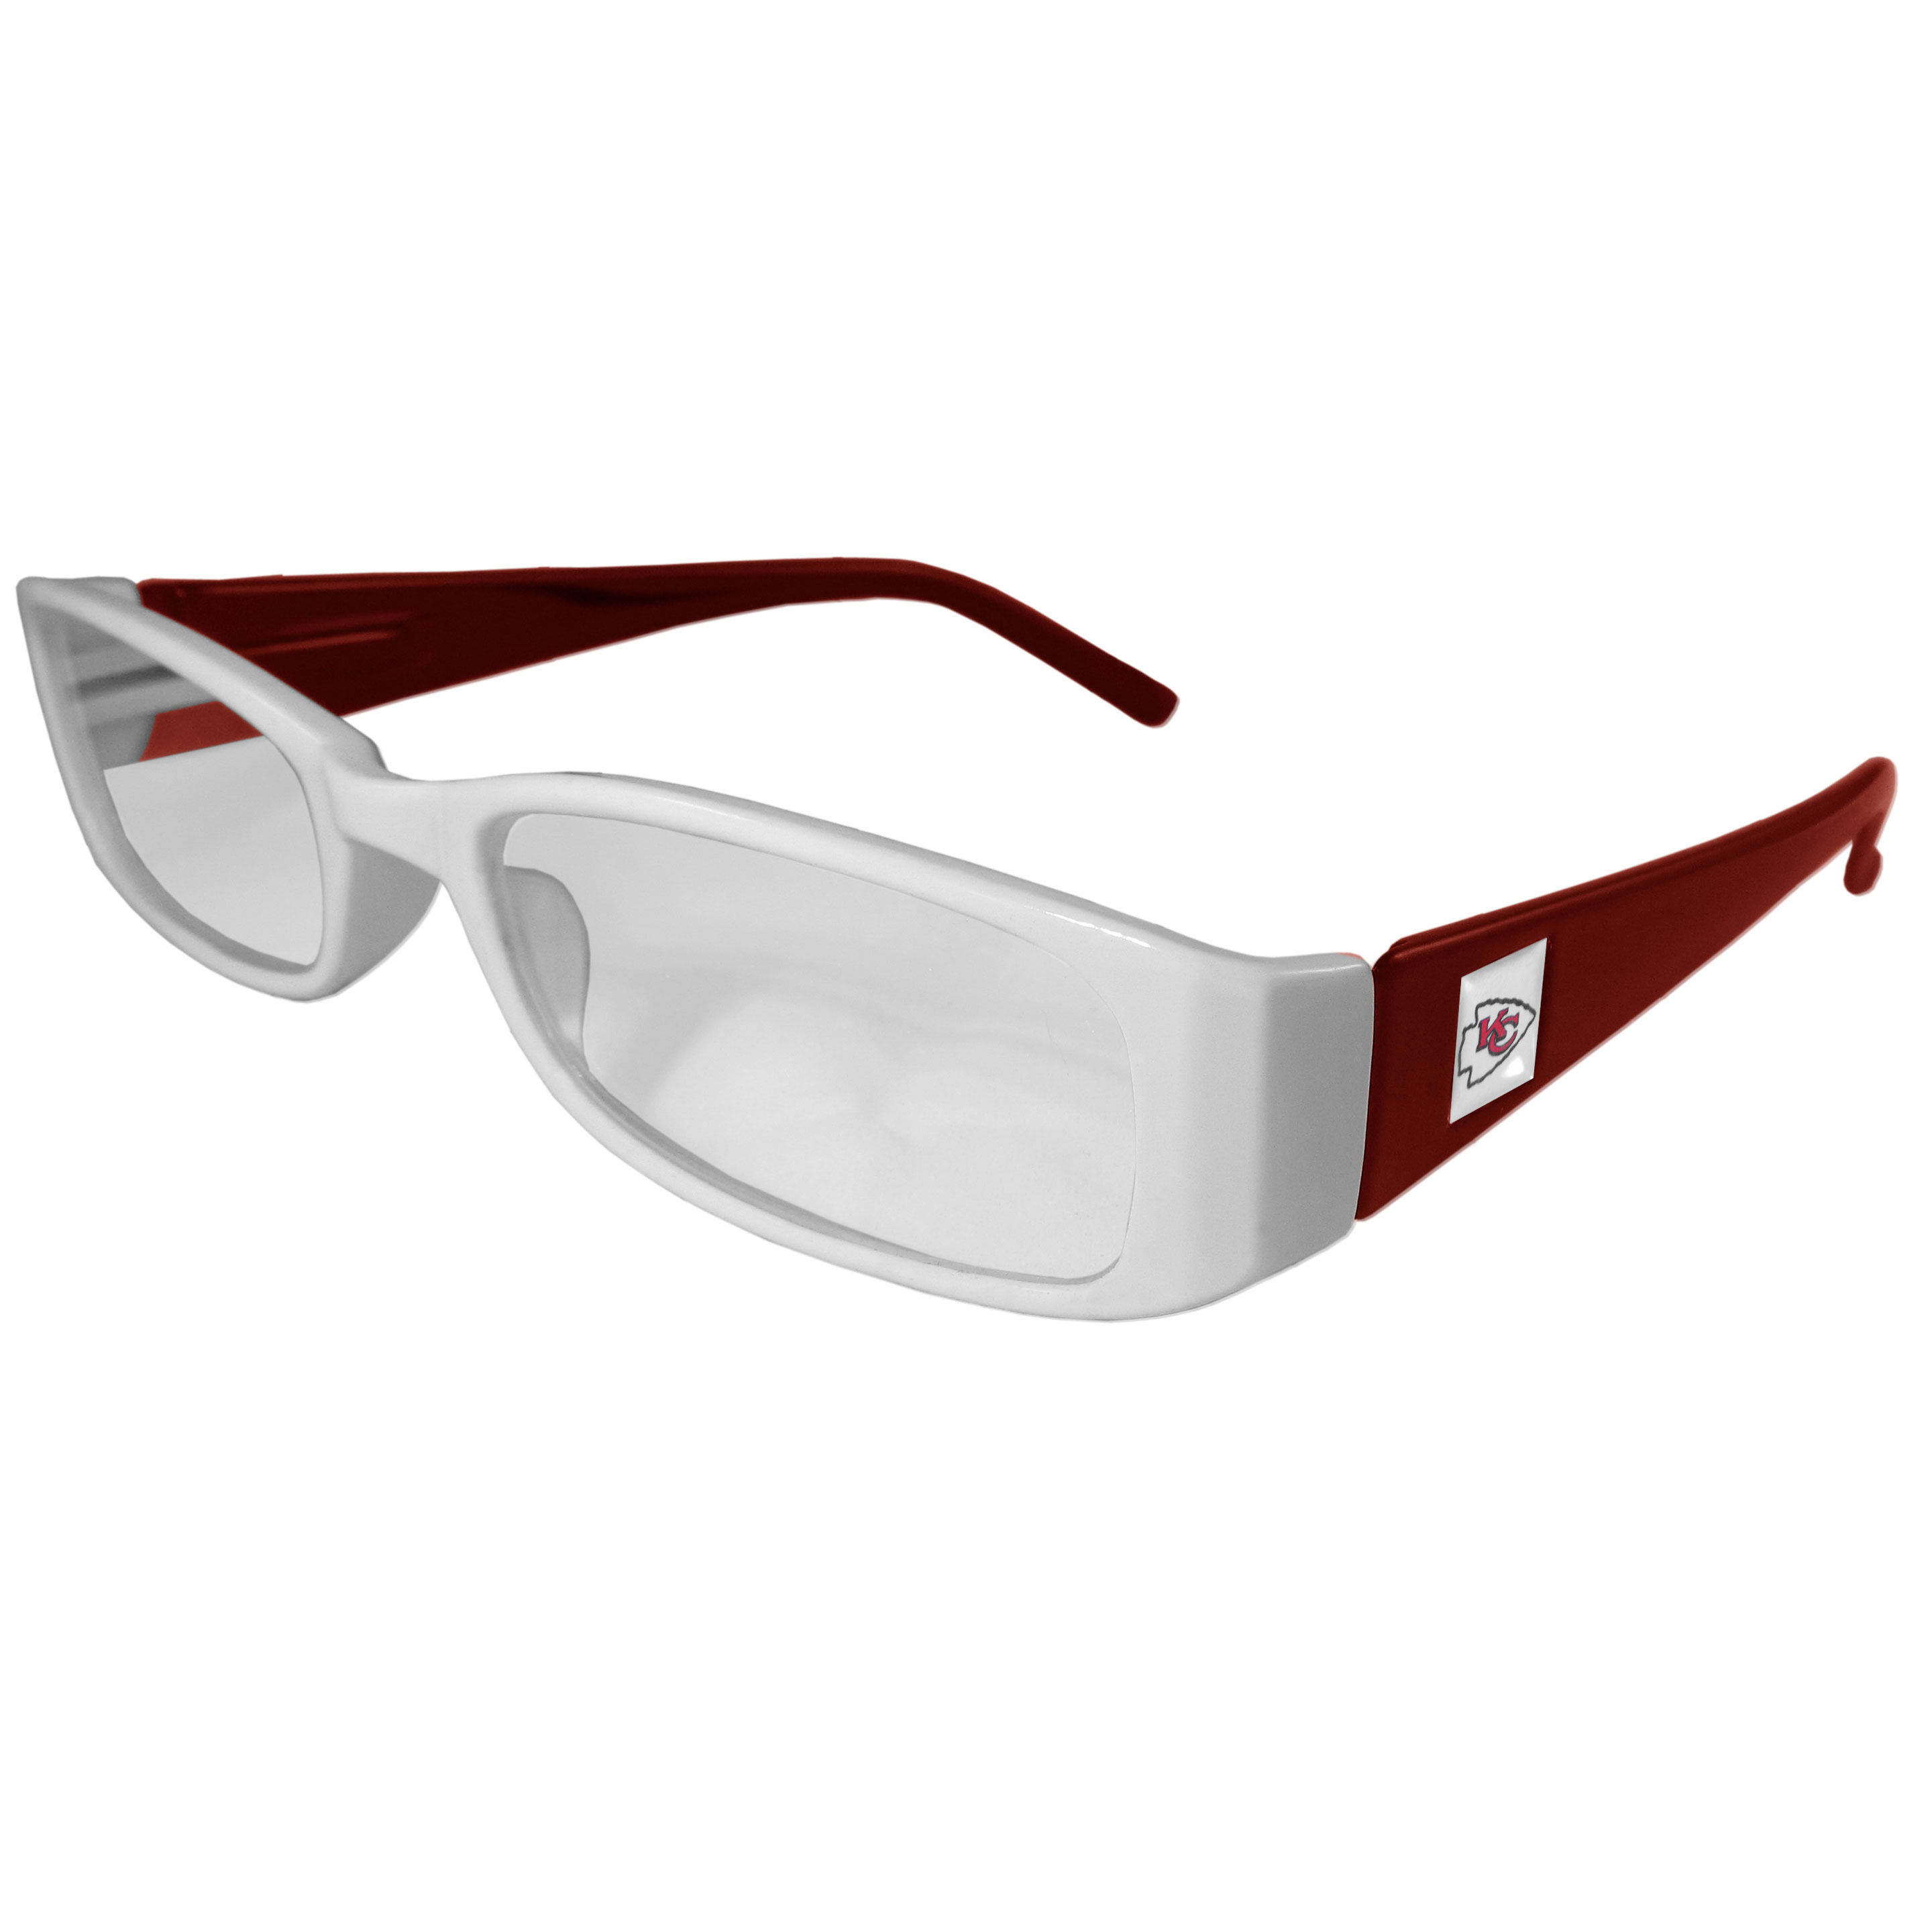 Kansas City Chiefs Reading Glasses +1.25 - Our Kansas City Chiefs reading glasses are 5.25 inches wide and feature the team logo on each arm. Magnification Power 1.25